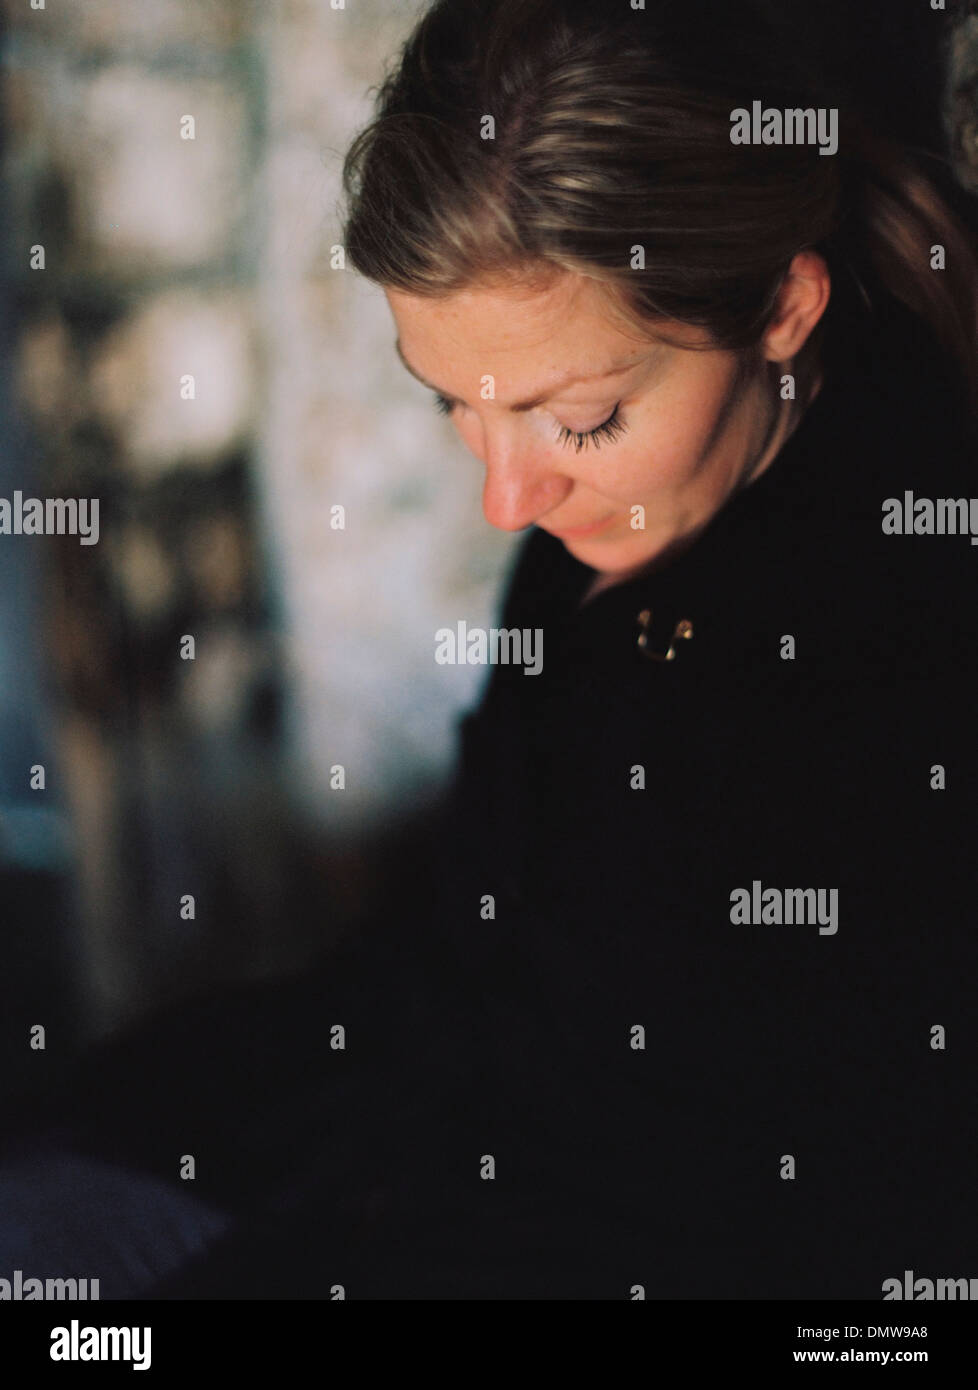 A woman wearing a black coat looking down in a pensive mood. Stock Photo